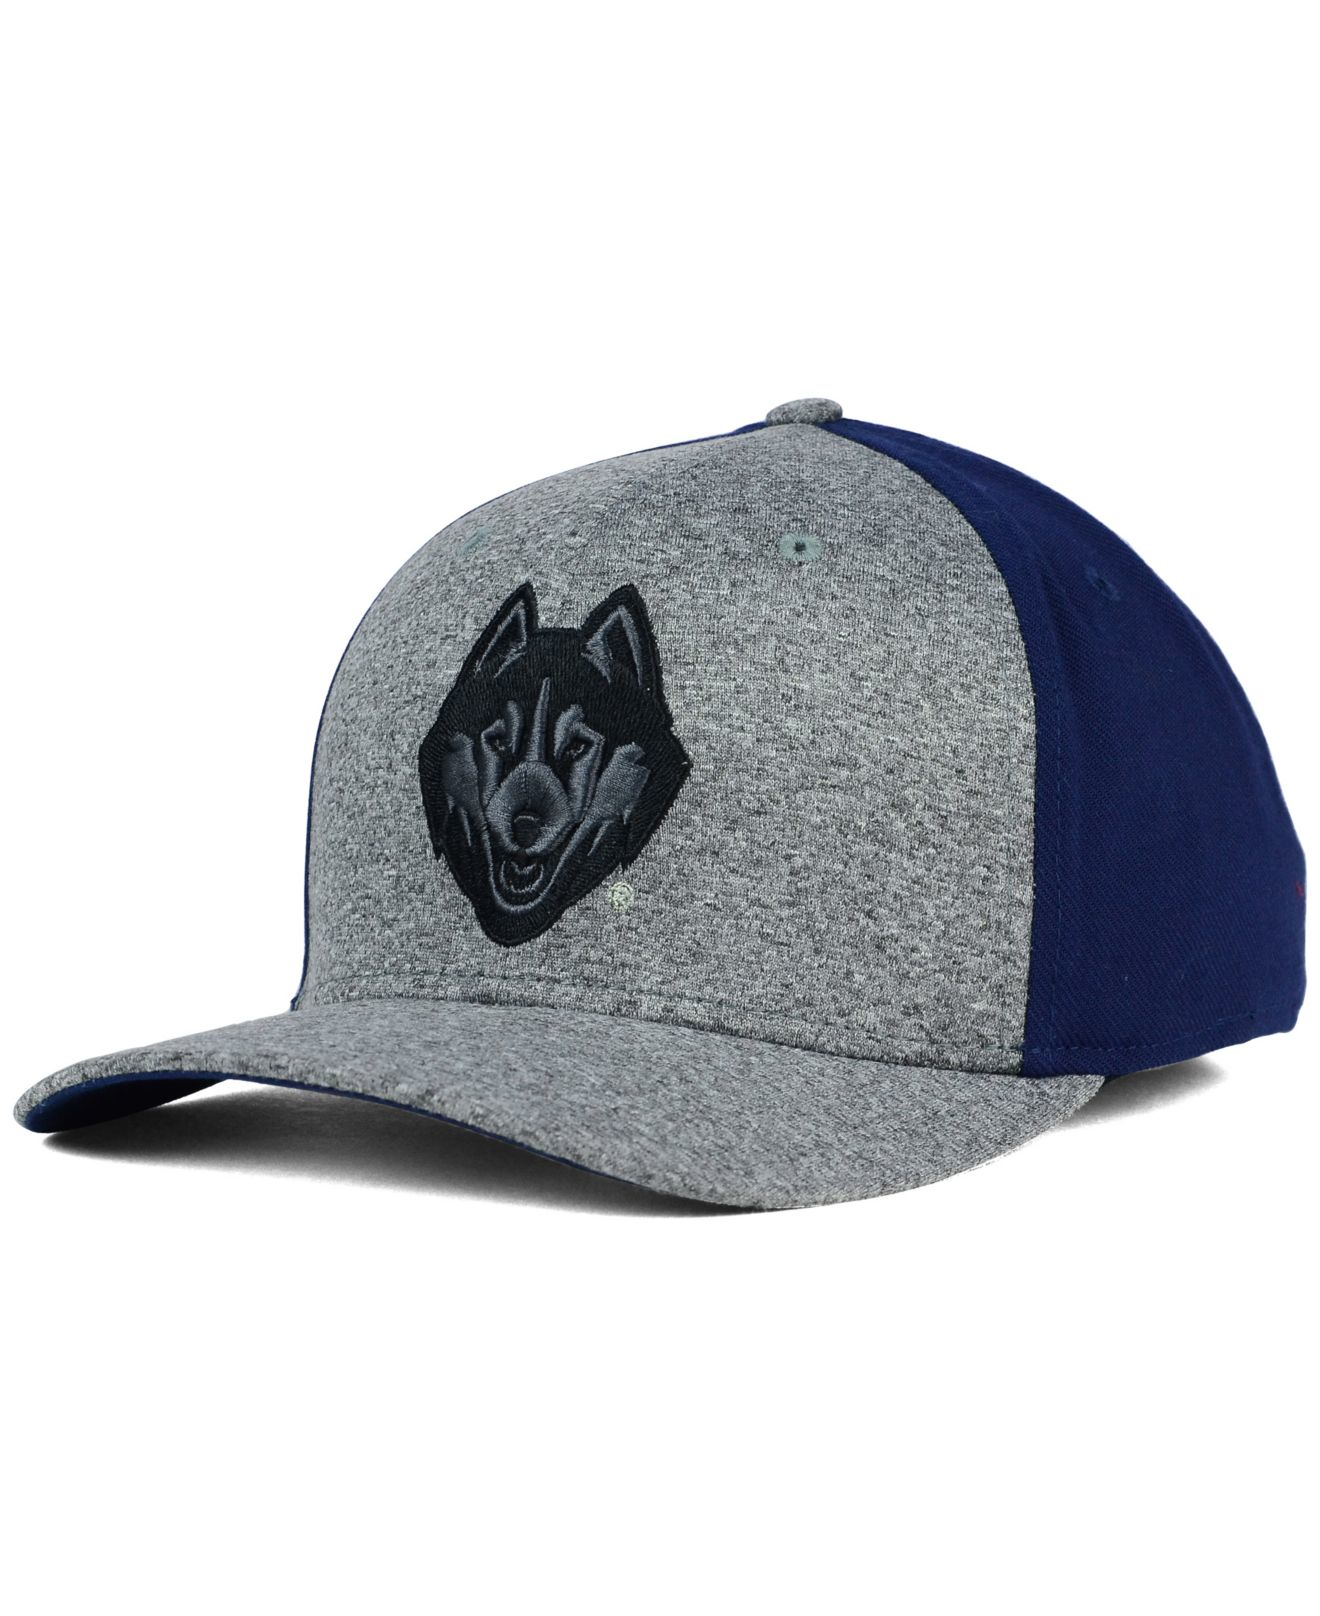 timeless design 43233 bcd31 low cost uconn huskies striped bucket hat navy fd6e0 e3b62  norway lyst  nike connecticut huskies jersey color blocked flex cap in blue for men  d8283 72773